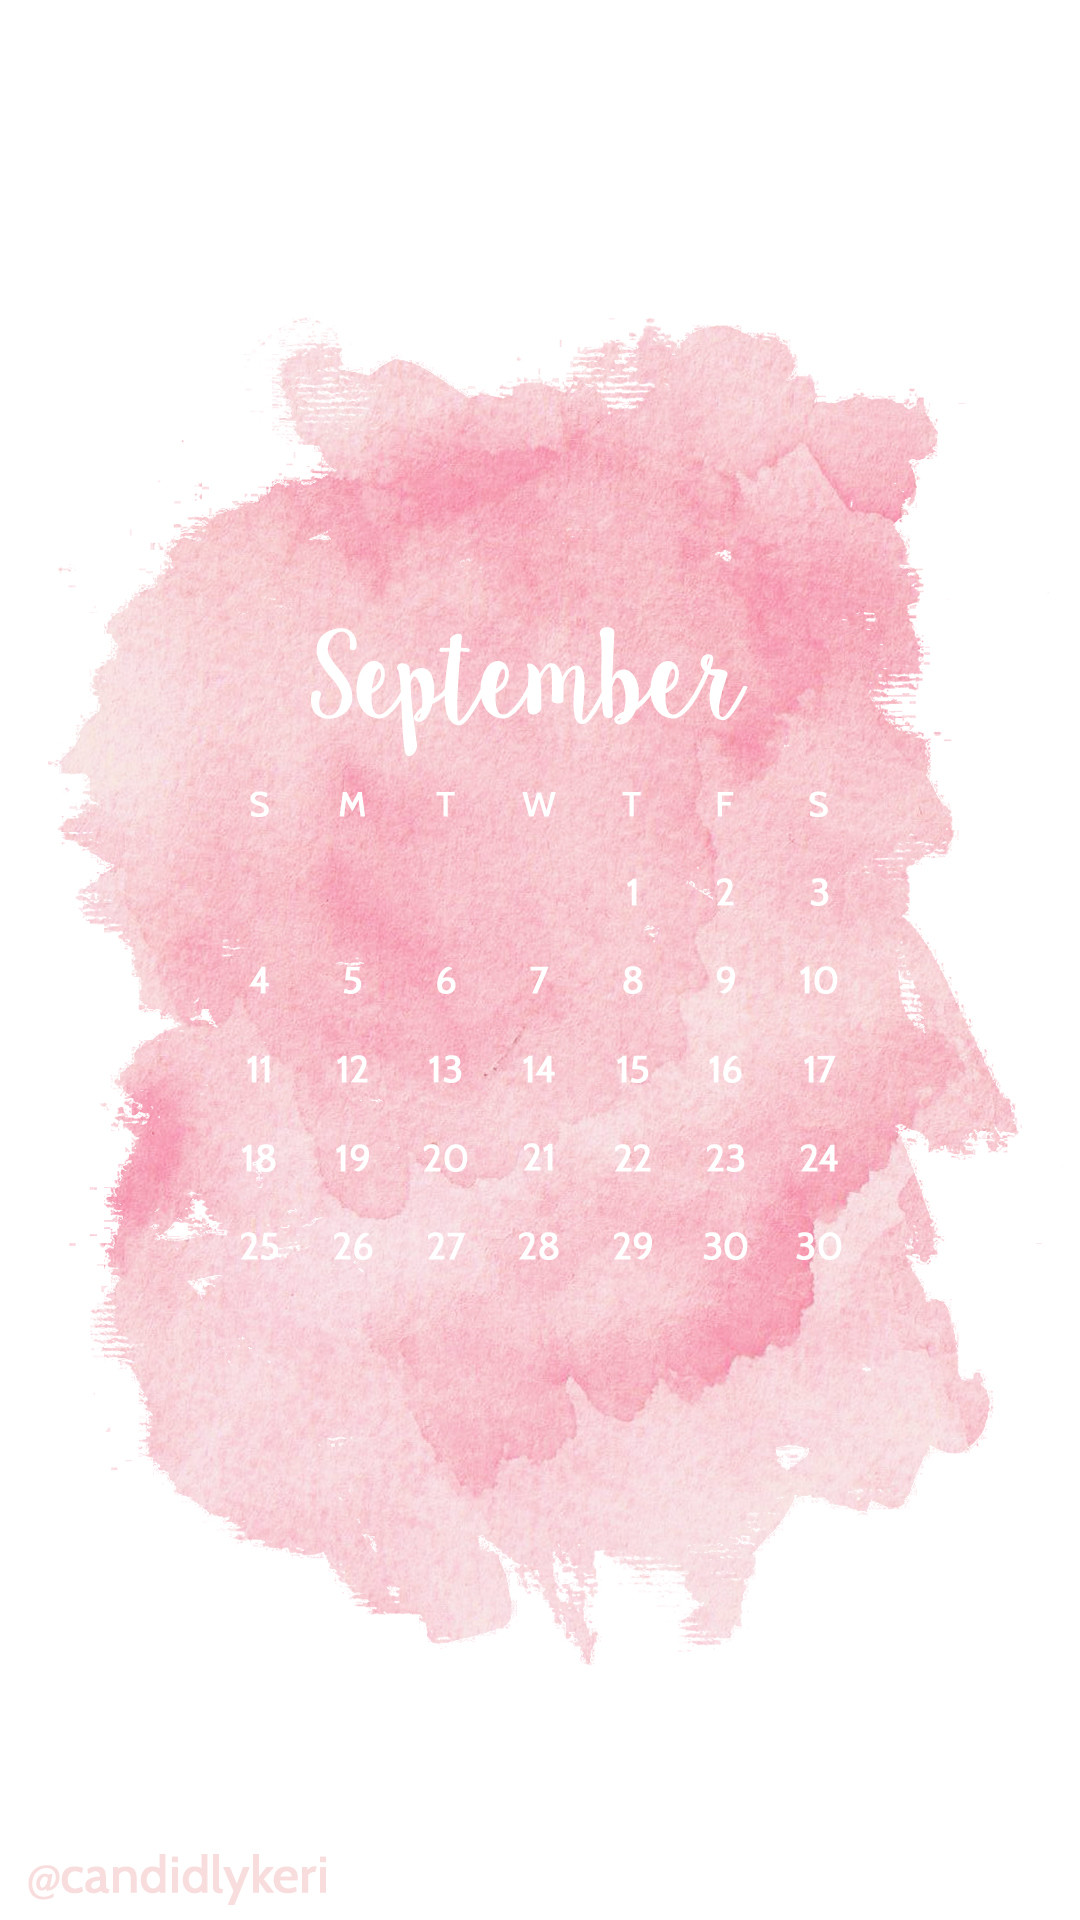 Pink blush watercolor September calendar 2016 wallpaper you can download  for free on the blog!